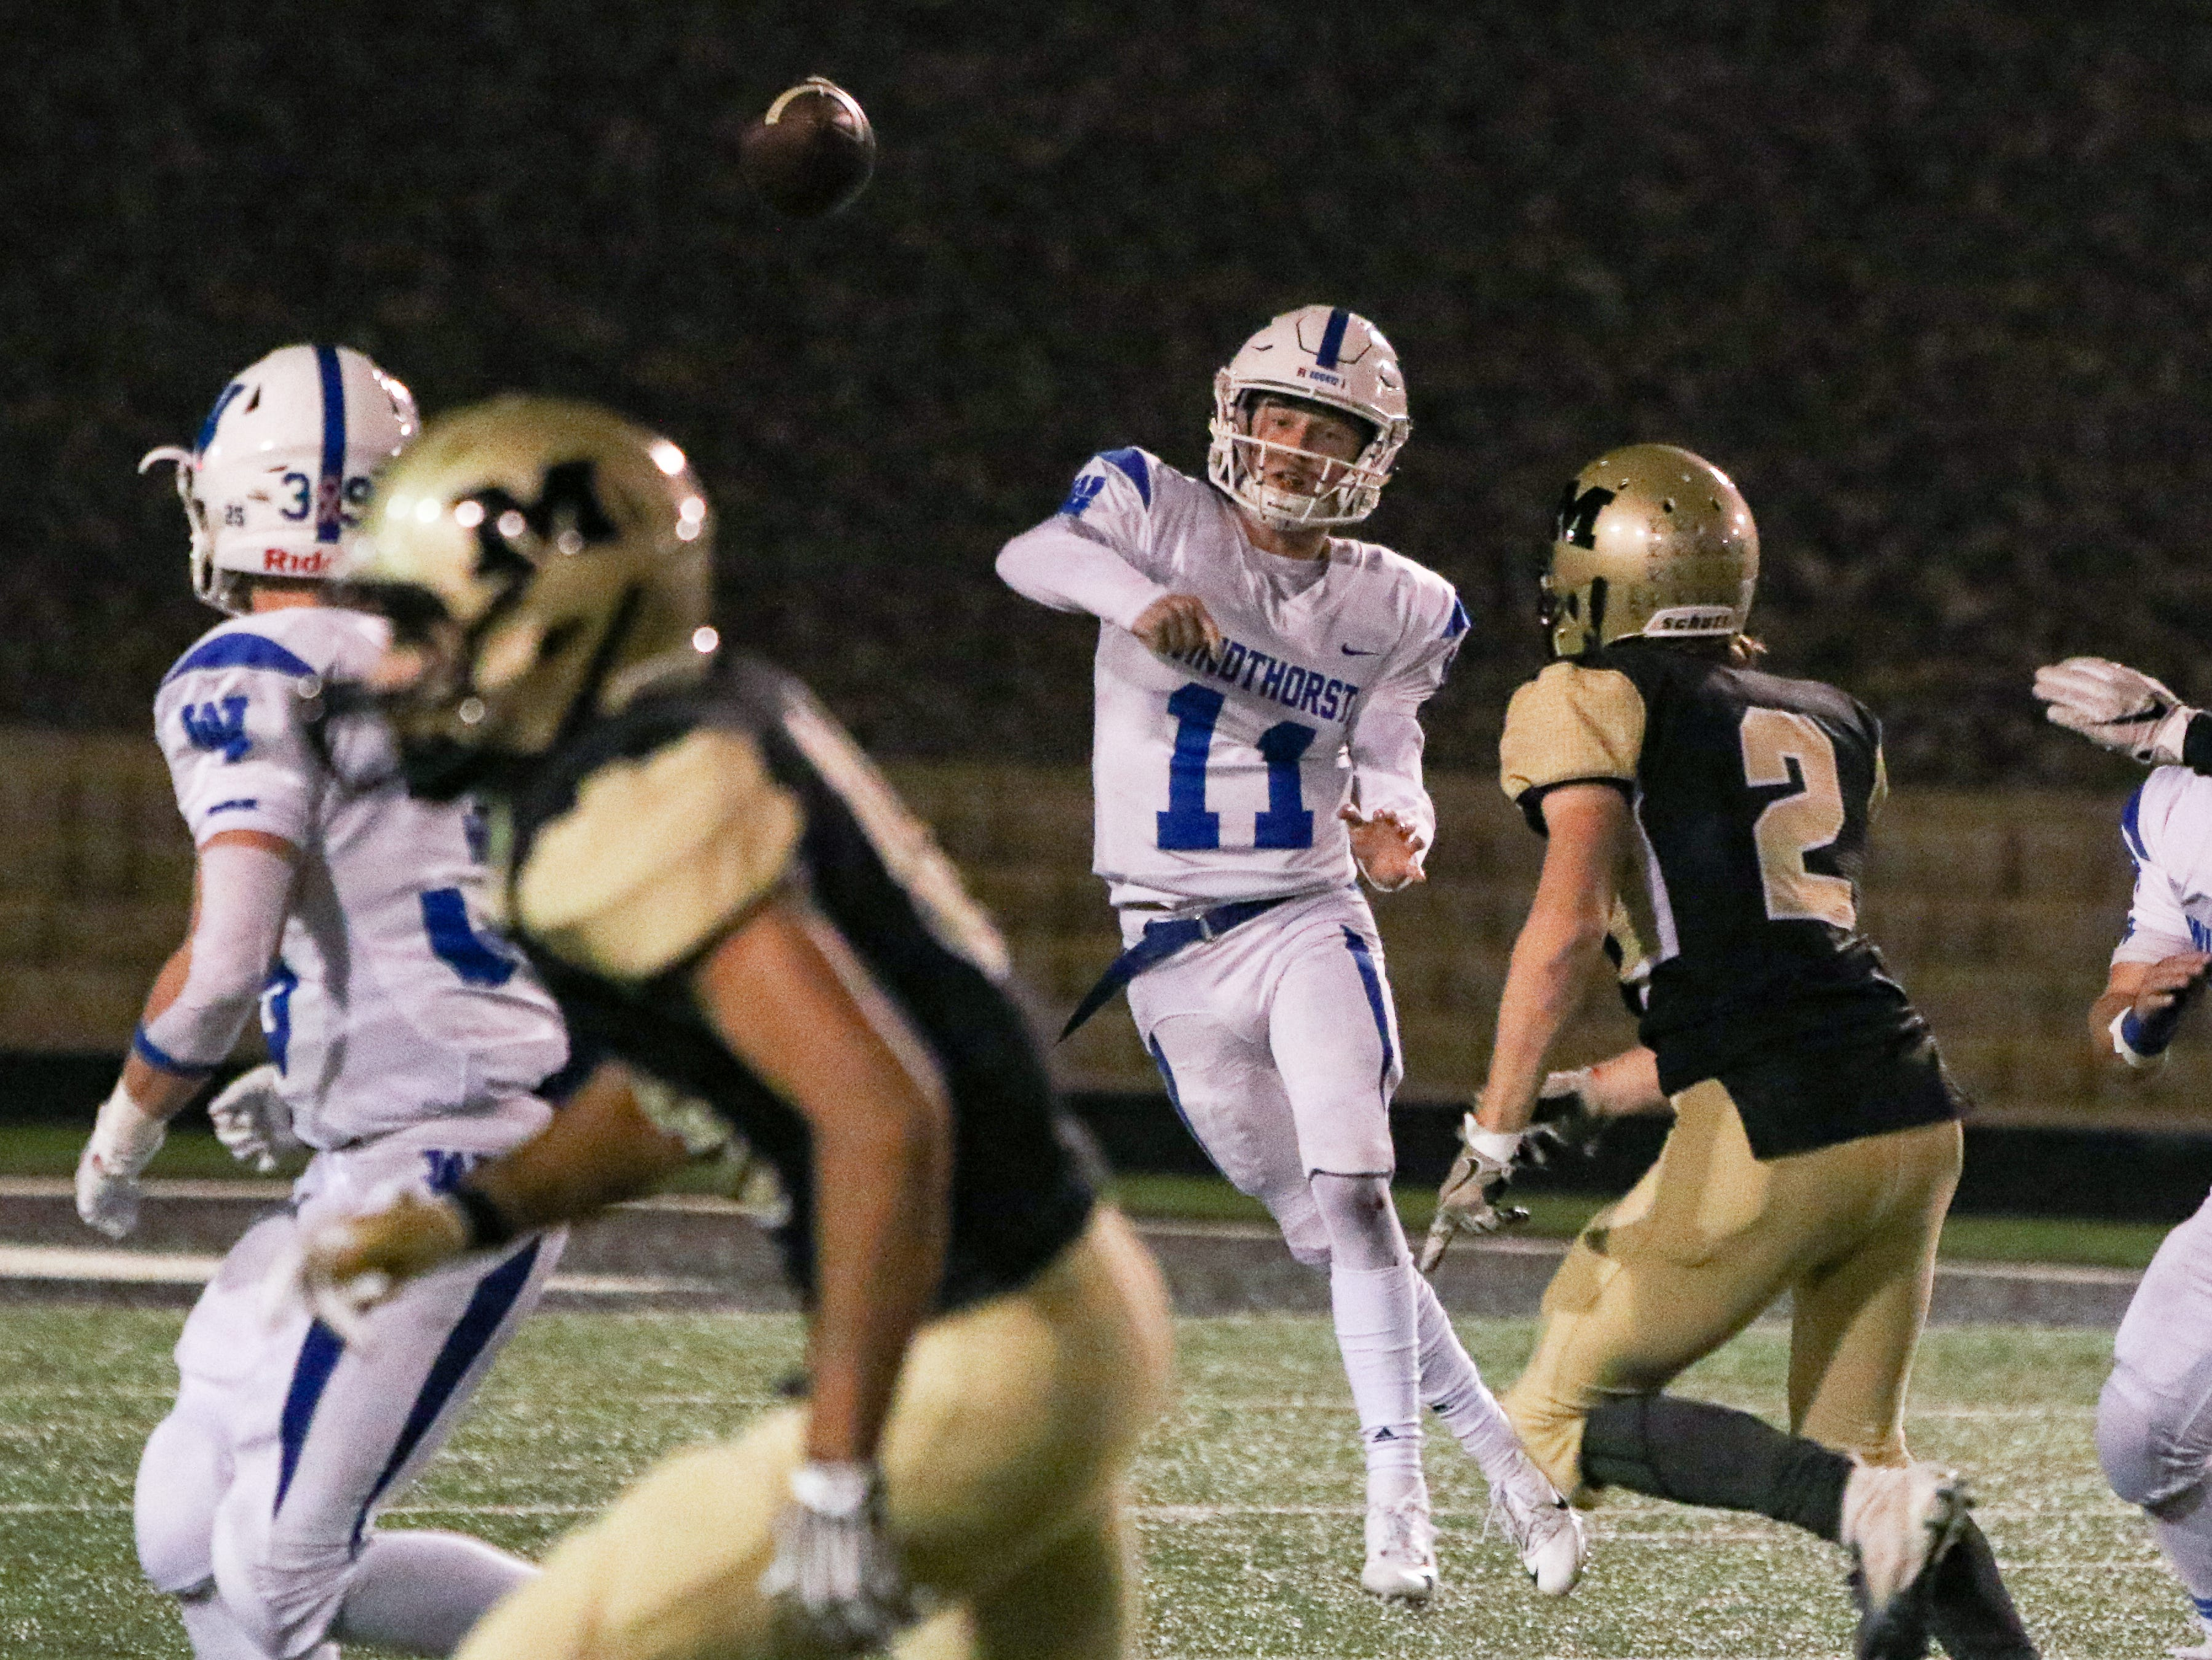 Windthorst's Hunter Wolf passes Thursday, Nov. 15, 2018, in the Region 2A division II bi-district game against Memphis in Vernon.